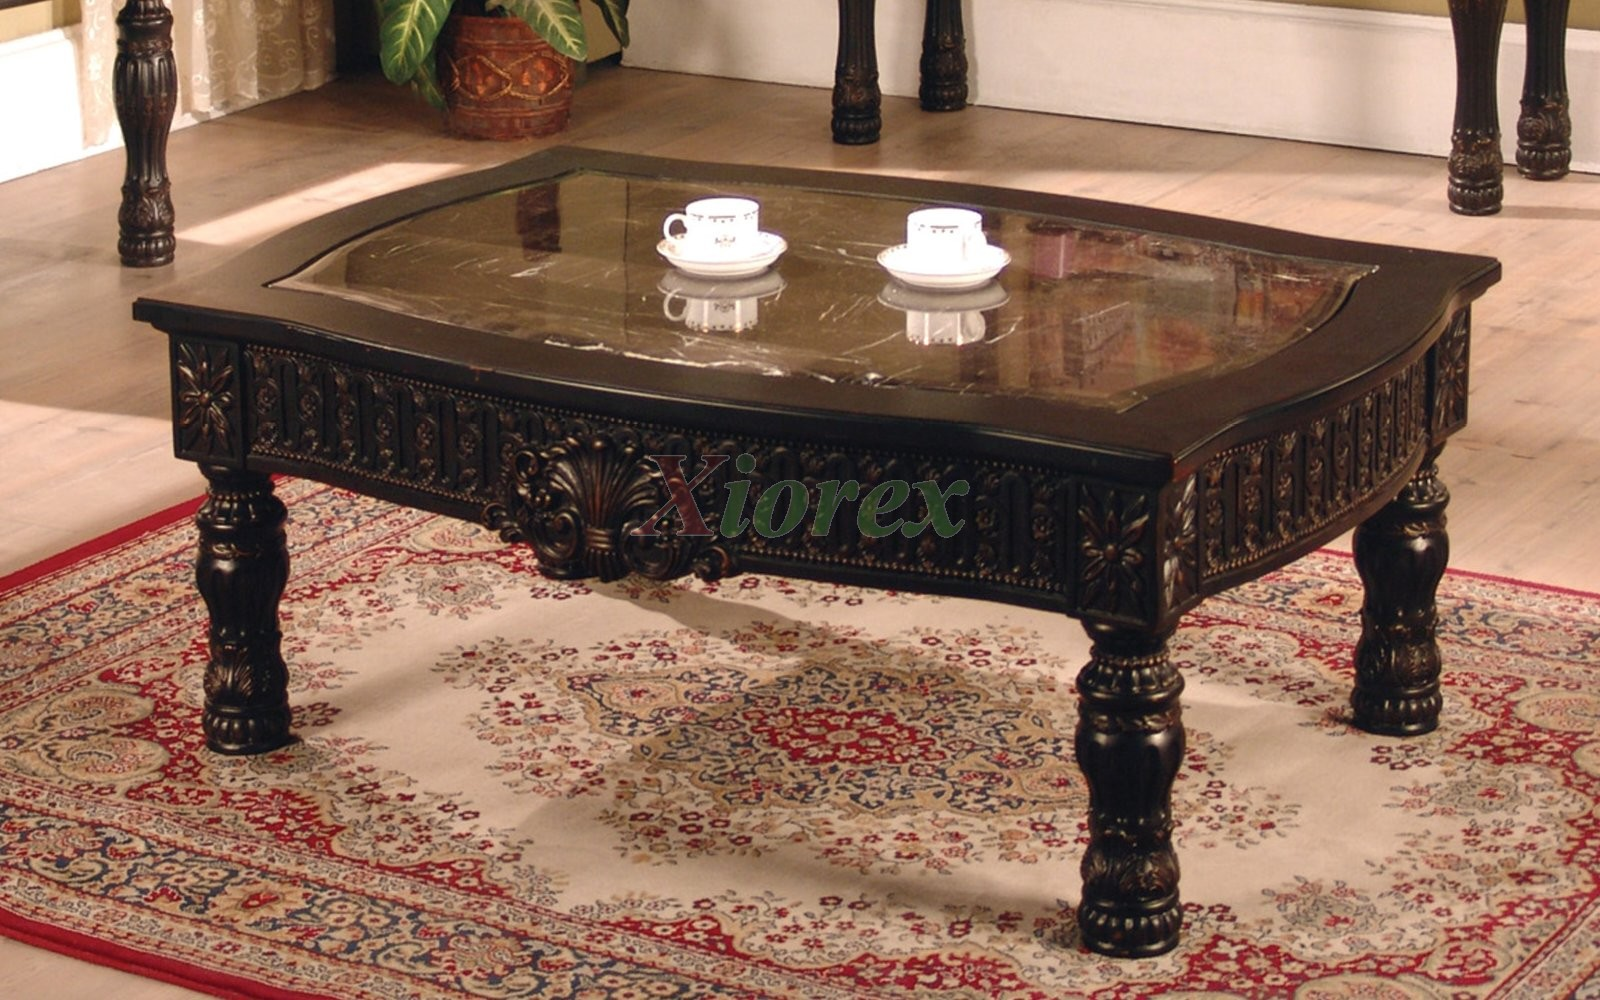 Superieur Ajax Rectangle Coffee Table With Faux Marble Top Inlay | Xiorex